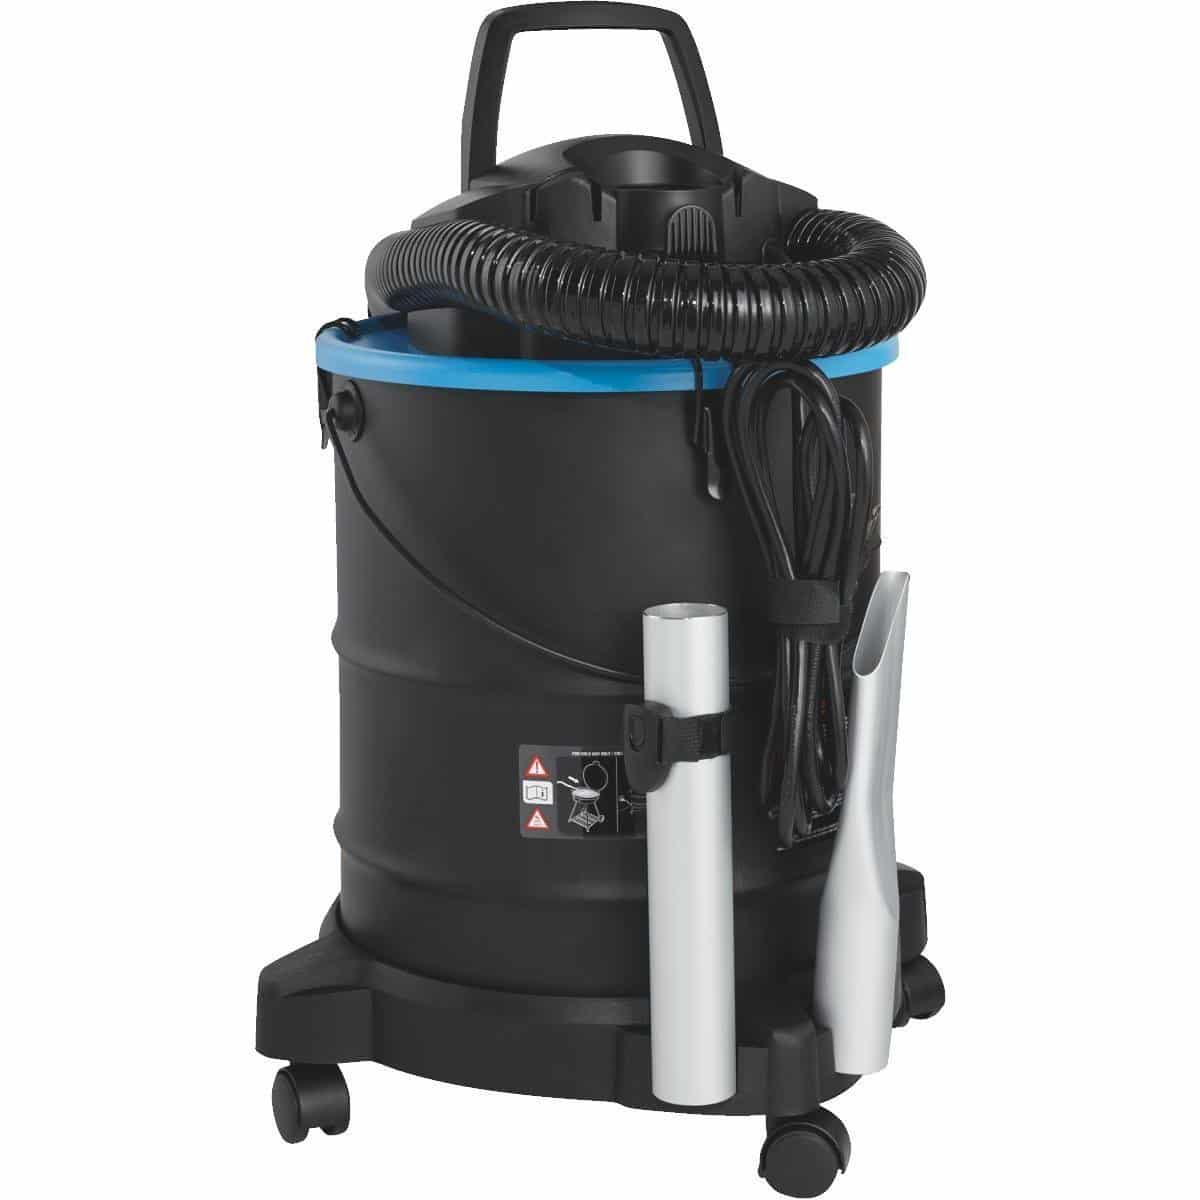 Best Ash Vacuum For Fireplace And Pellet Stove Reviews